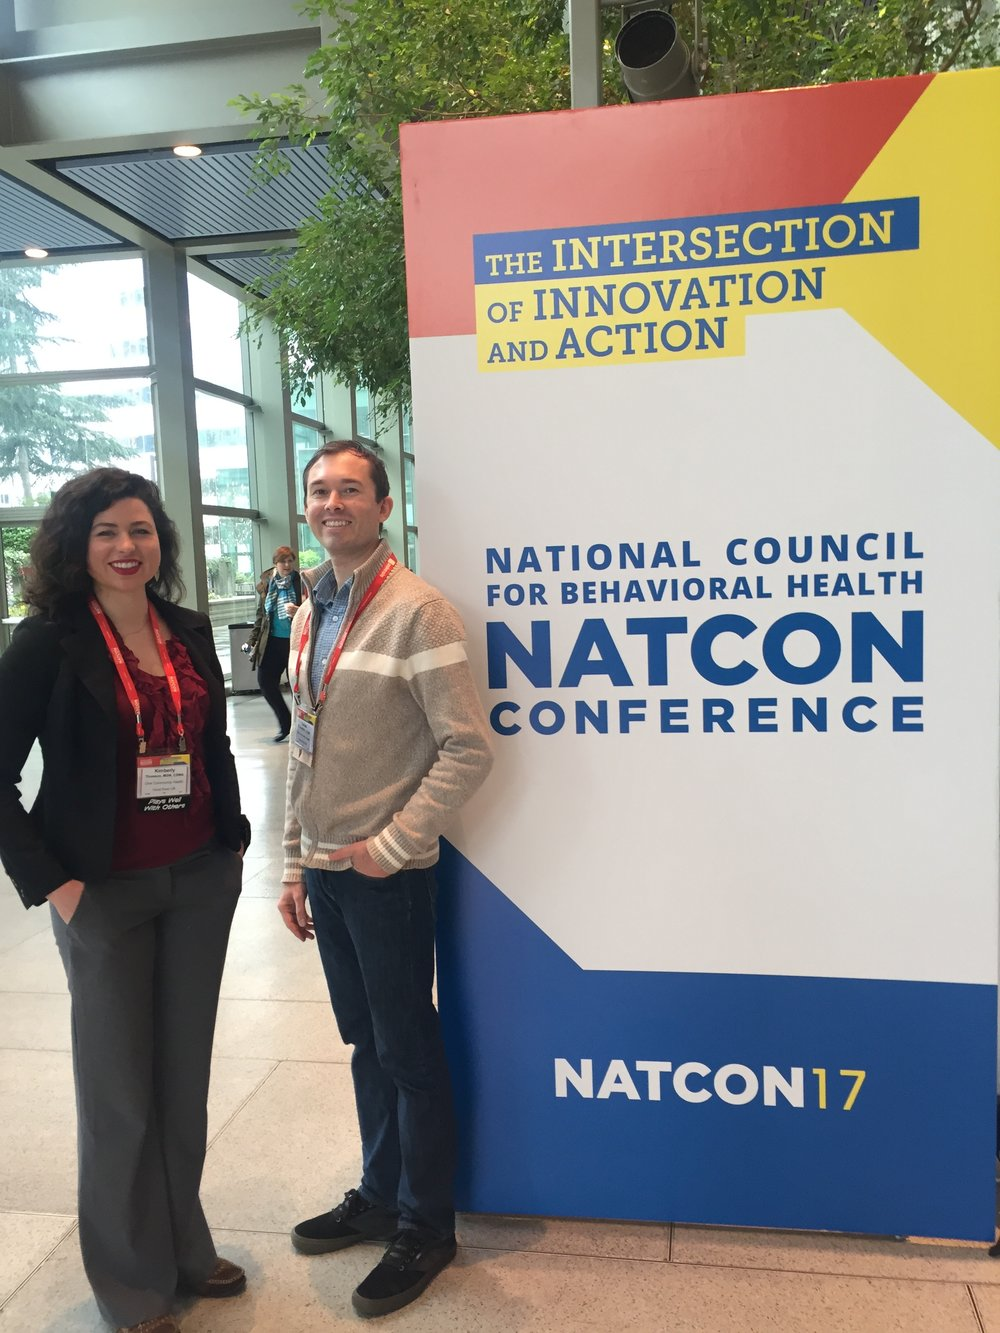 Kimberly Thomson, MSW and Lucas O'Laughlin, LCSW MAC CADC III, of One Community Health attending the National Council for Behavioral Health Conference, spring 2017.